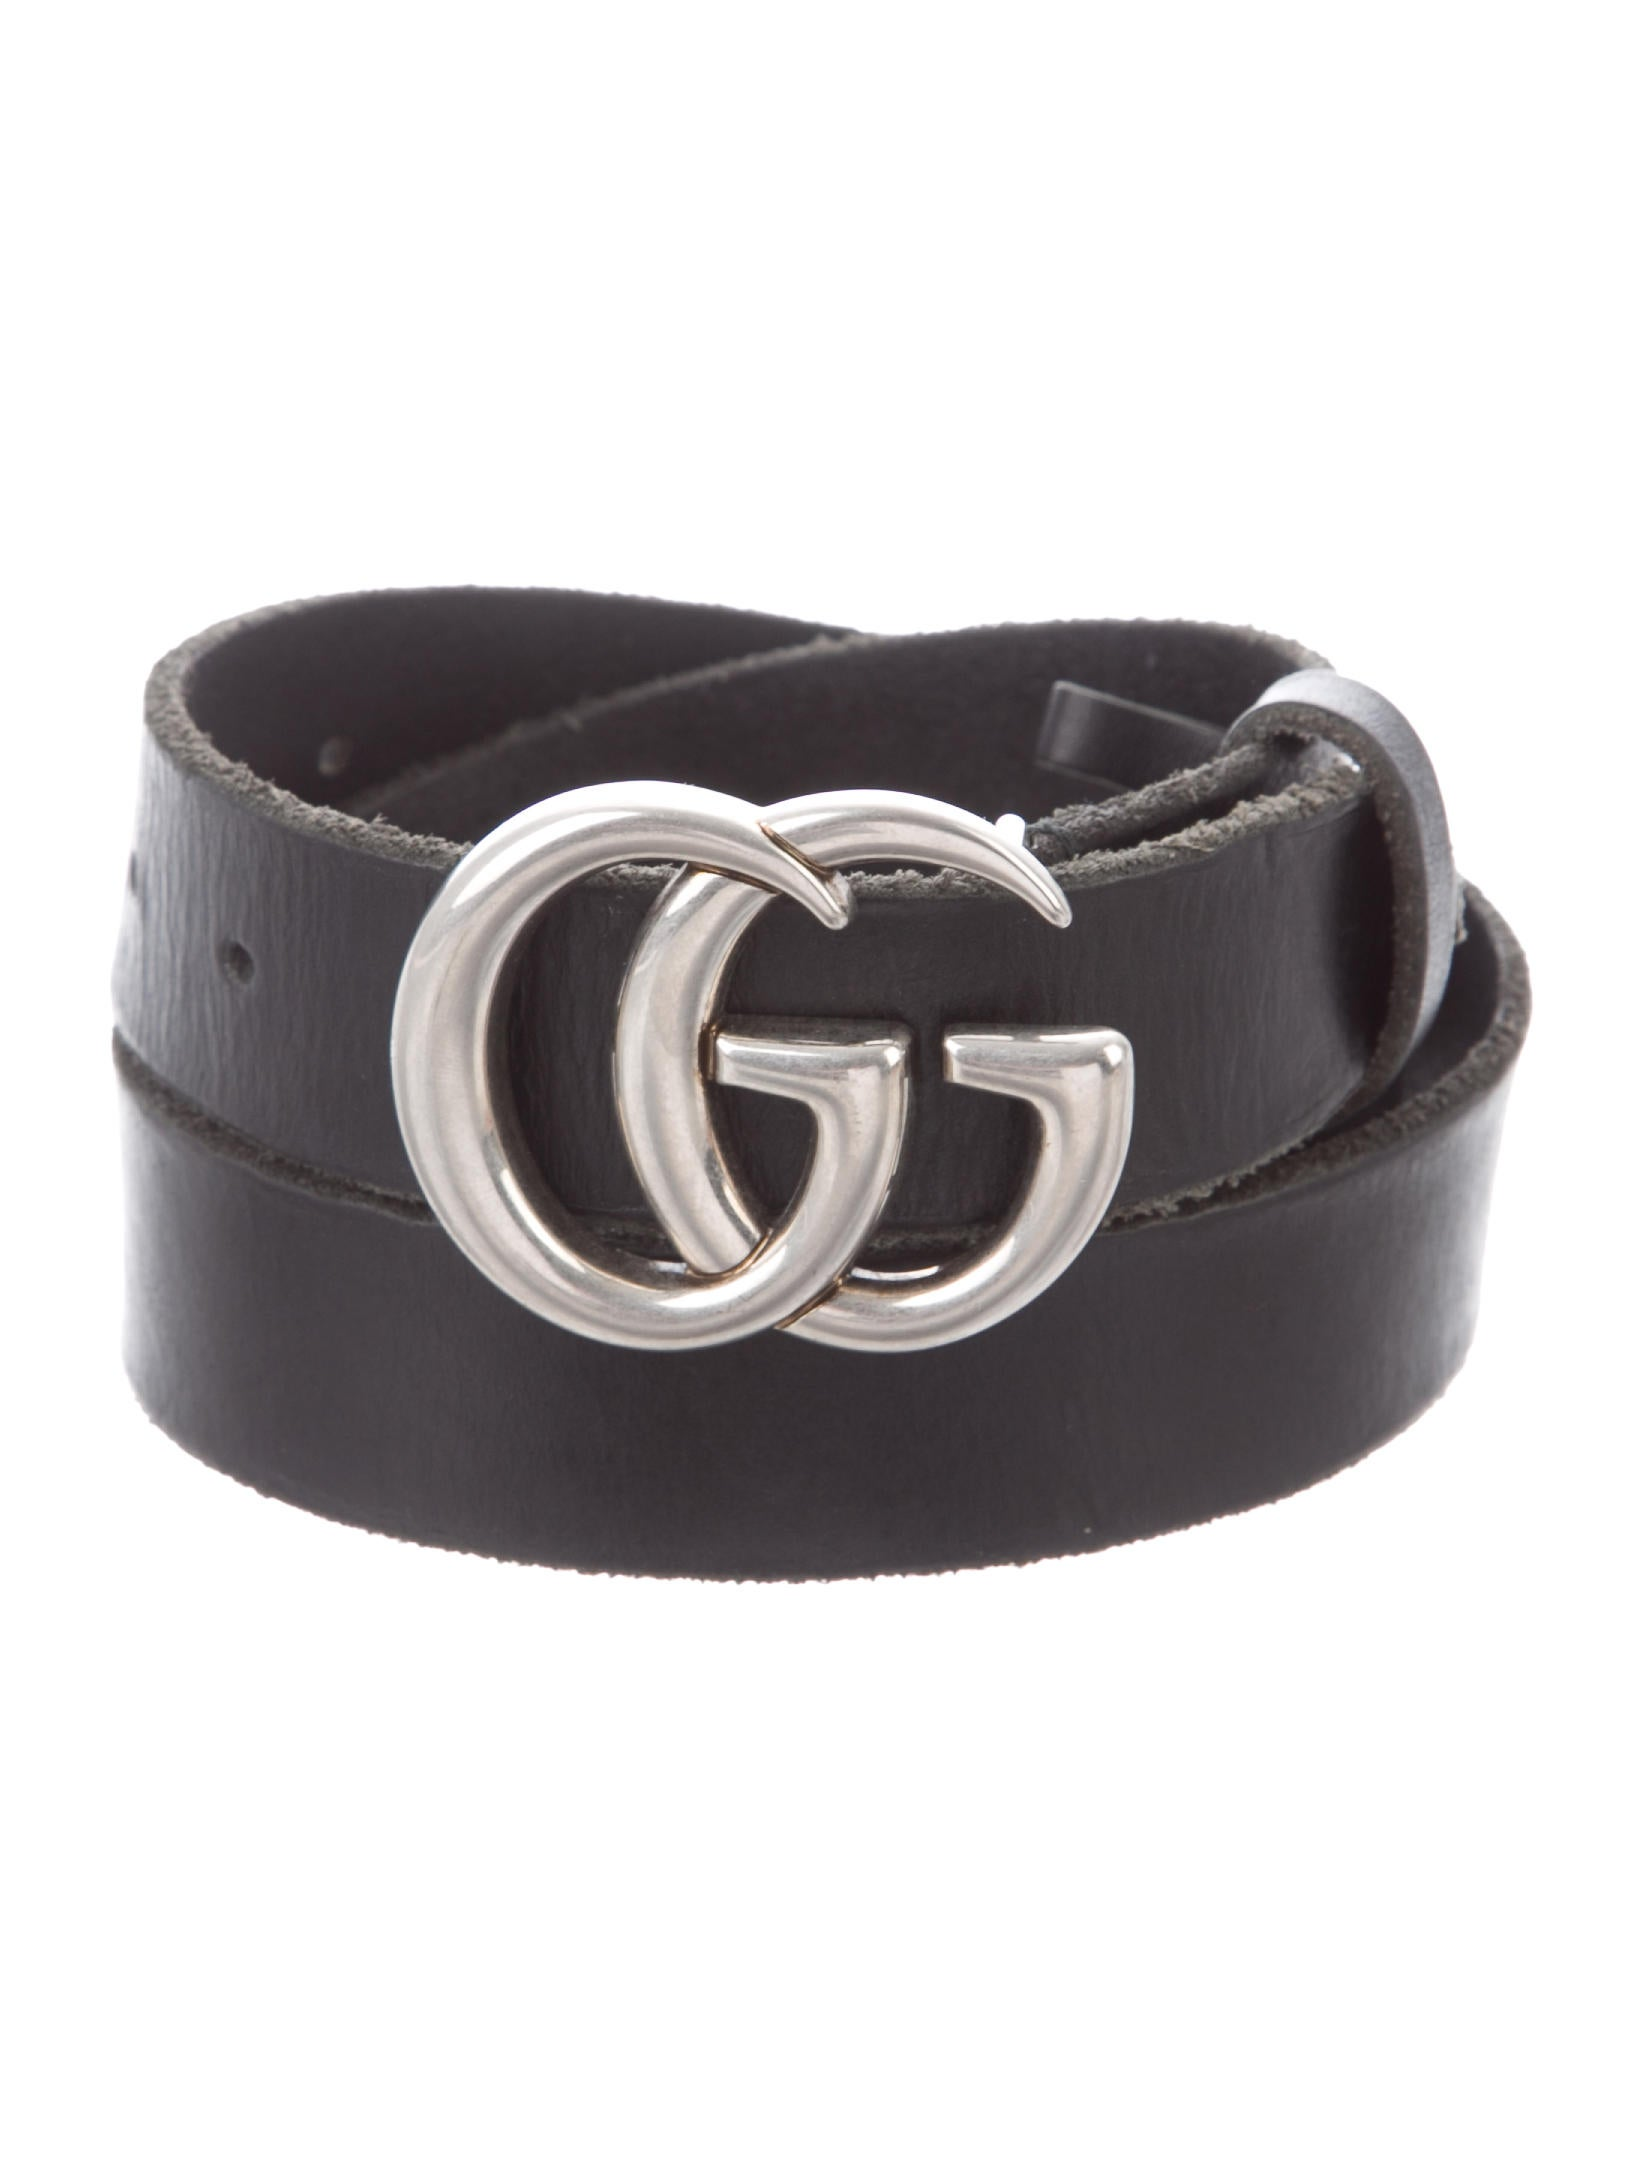 0b56d89f9 Gucci Running GG Leather Belt. - Accessories - GUC324493 | The RealReal